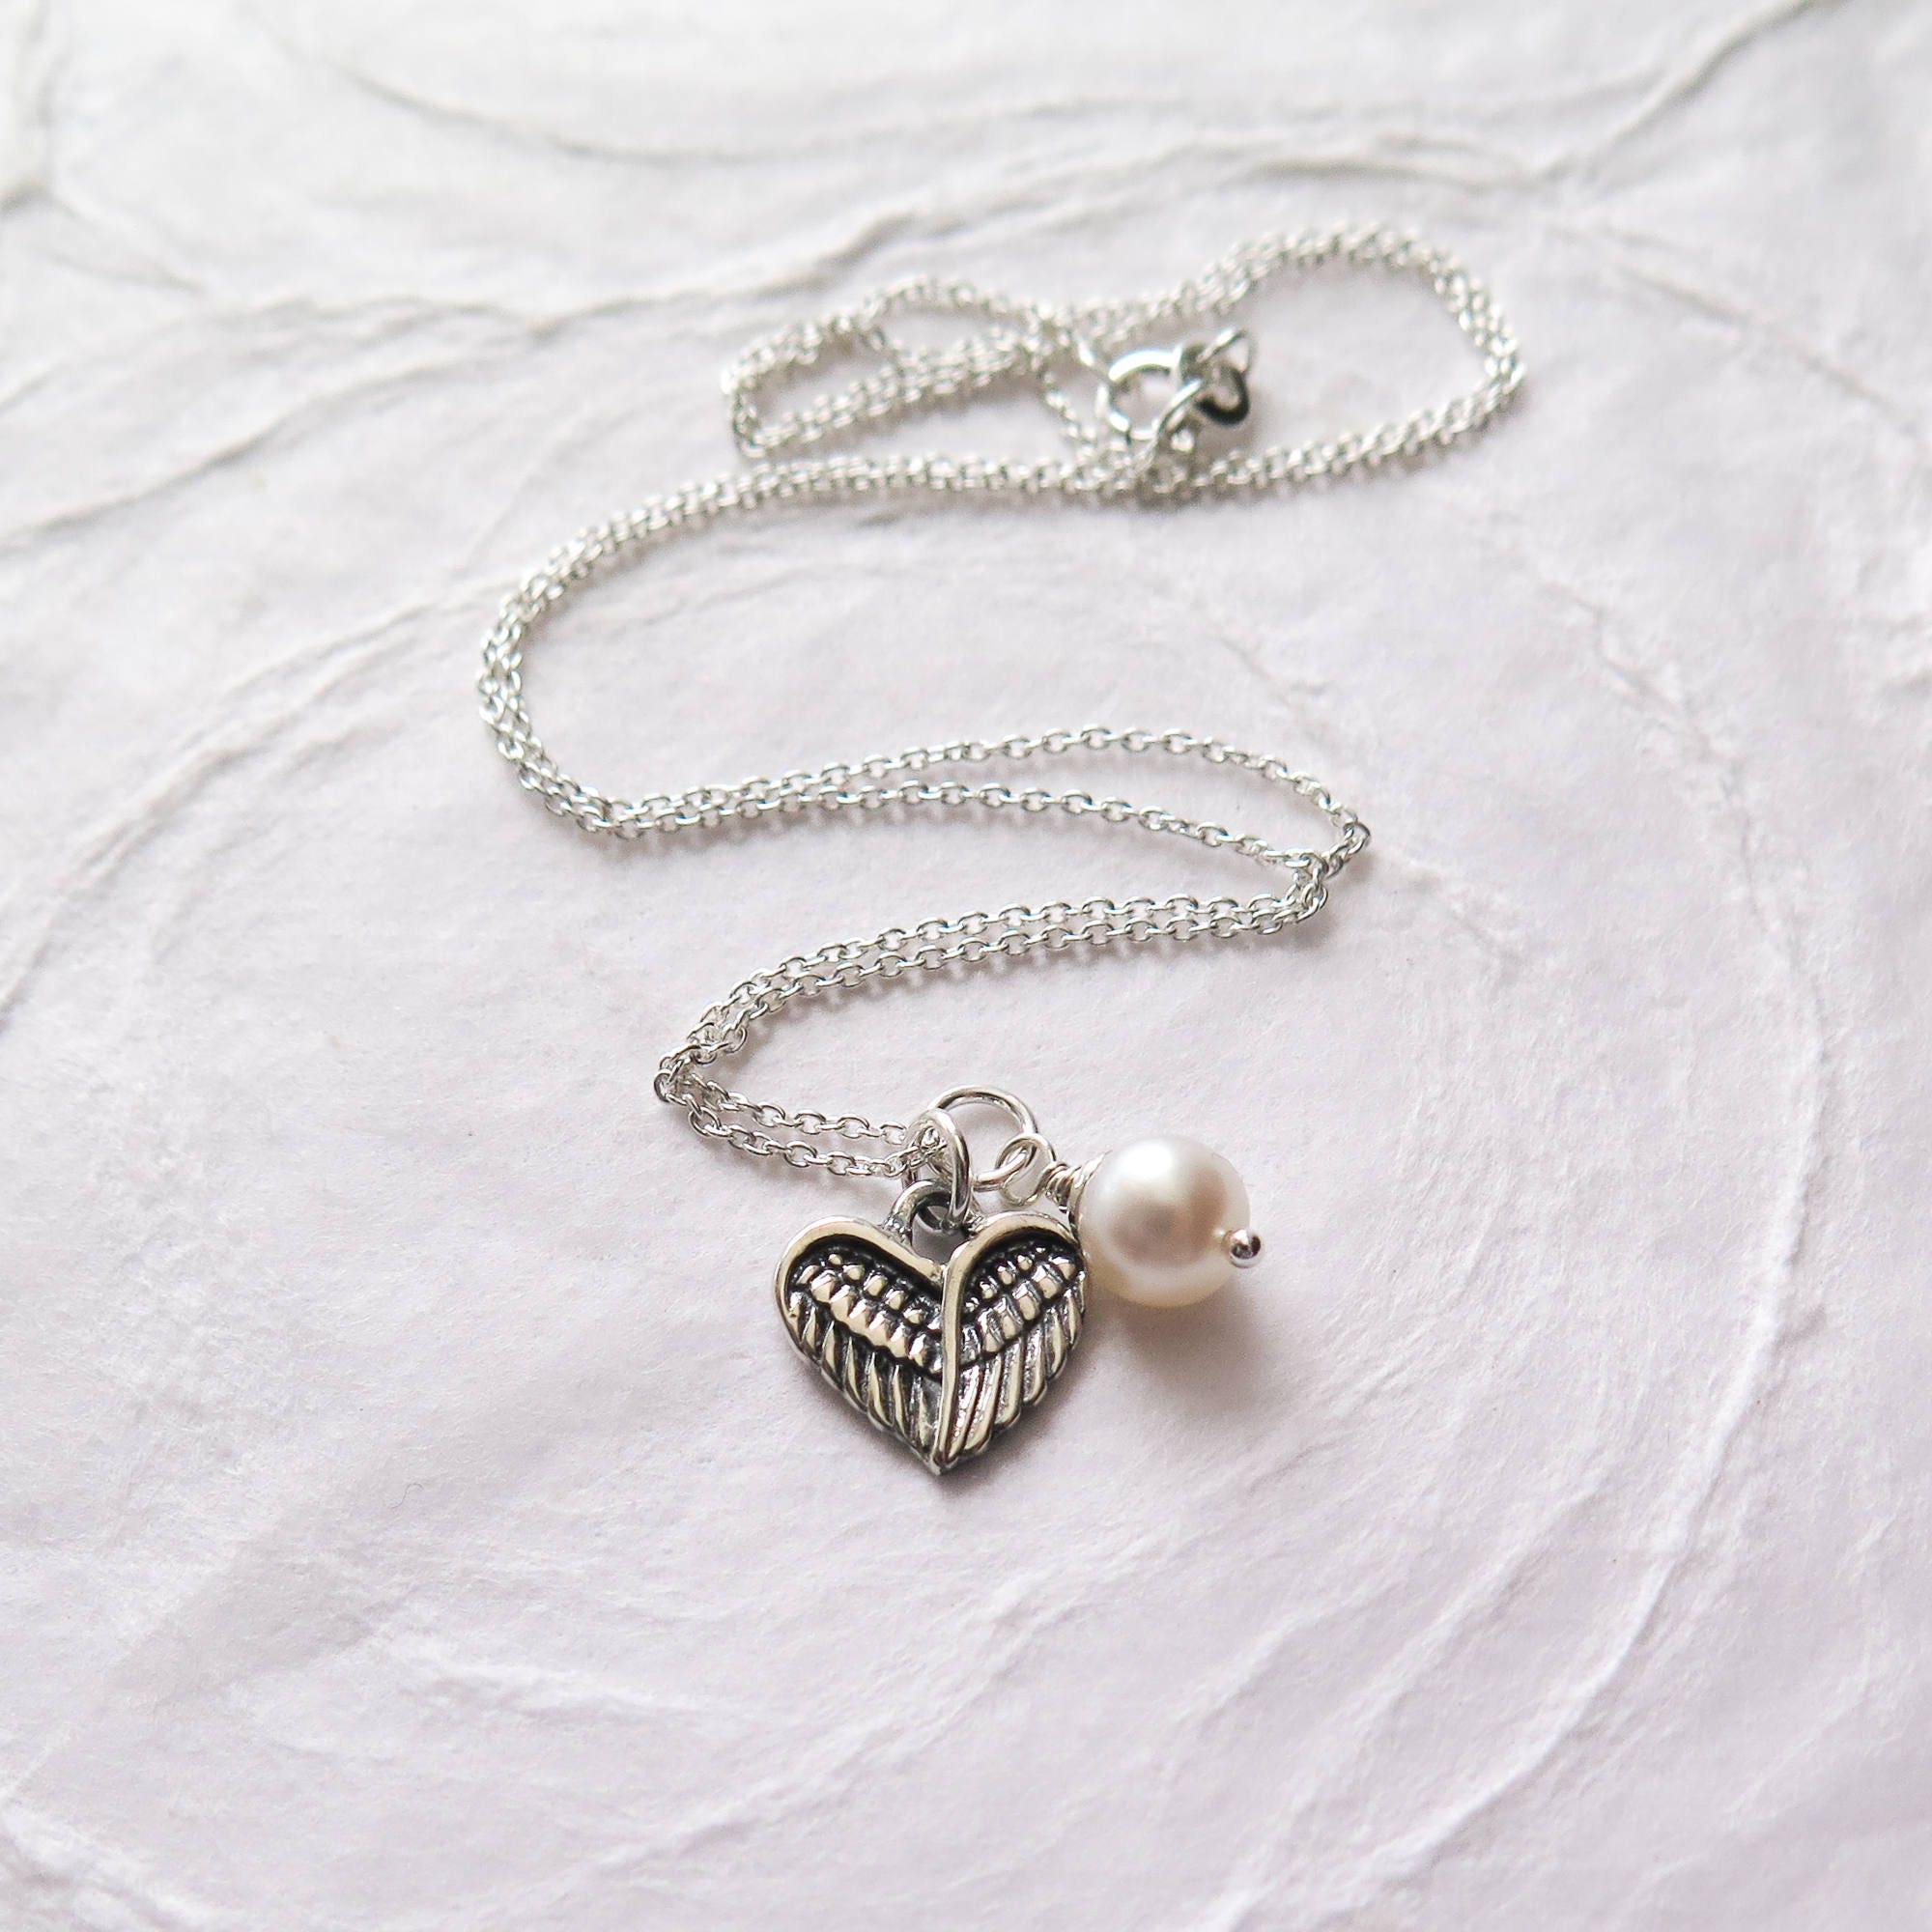 memorial loss necklace baby sids aag bean sentiments remembrance jewellery miscarriage